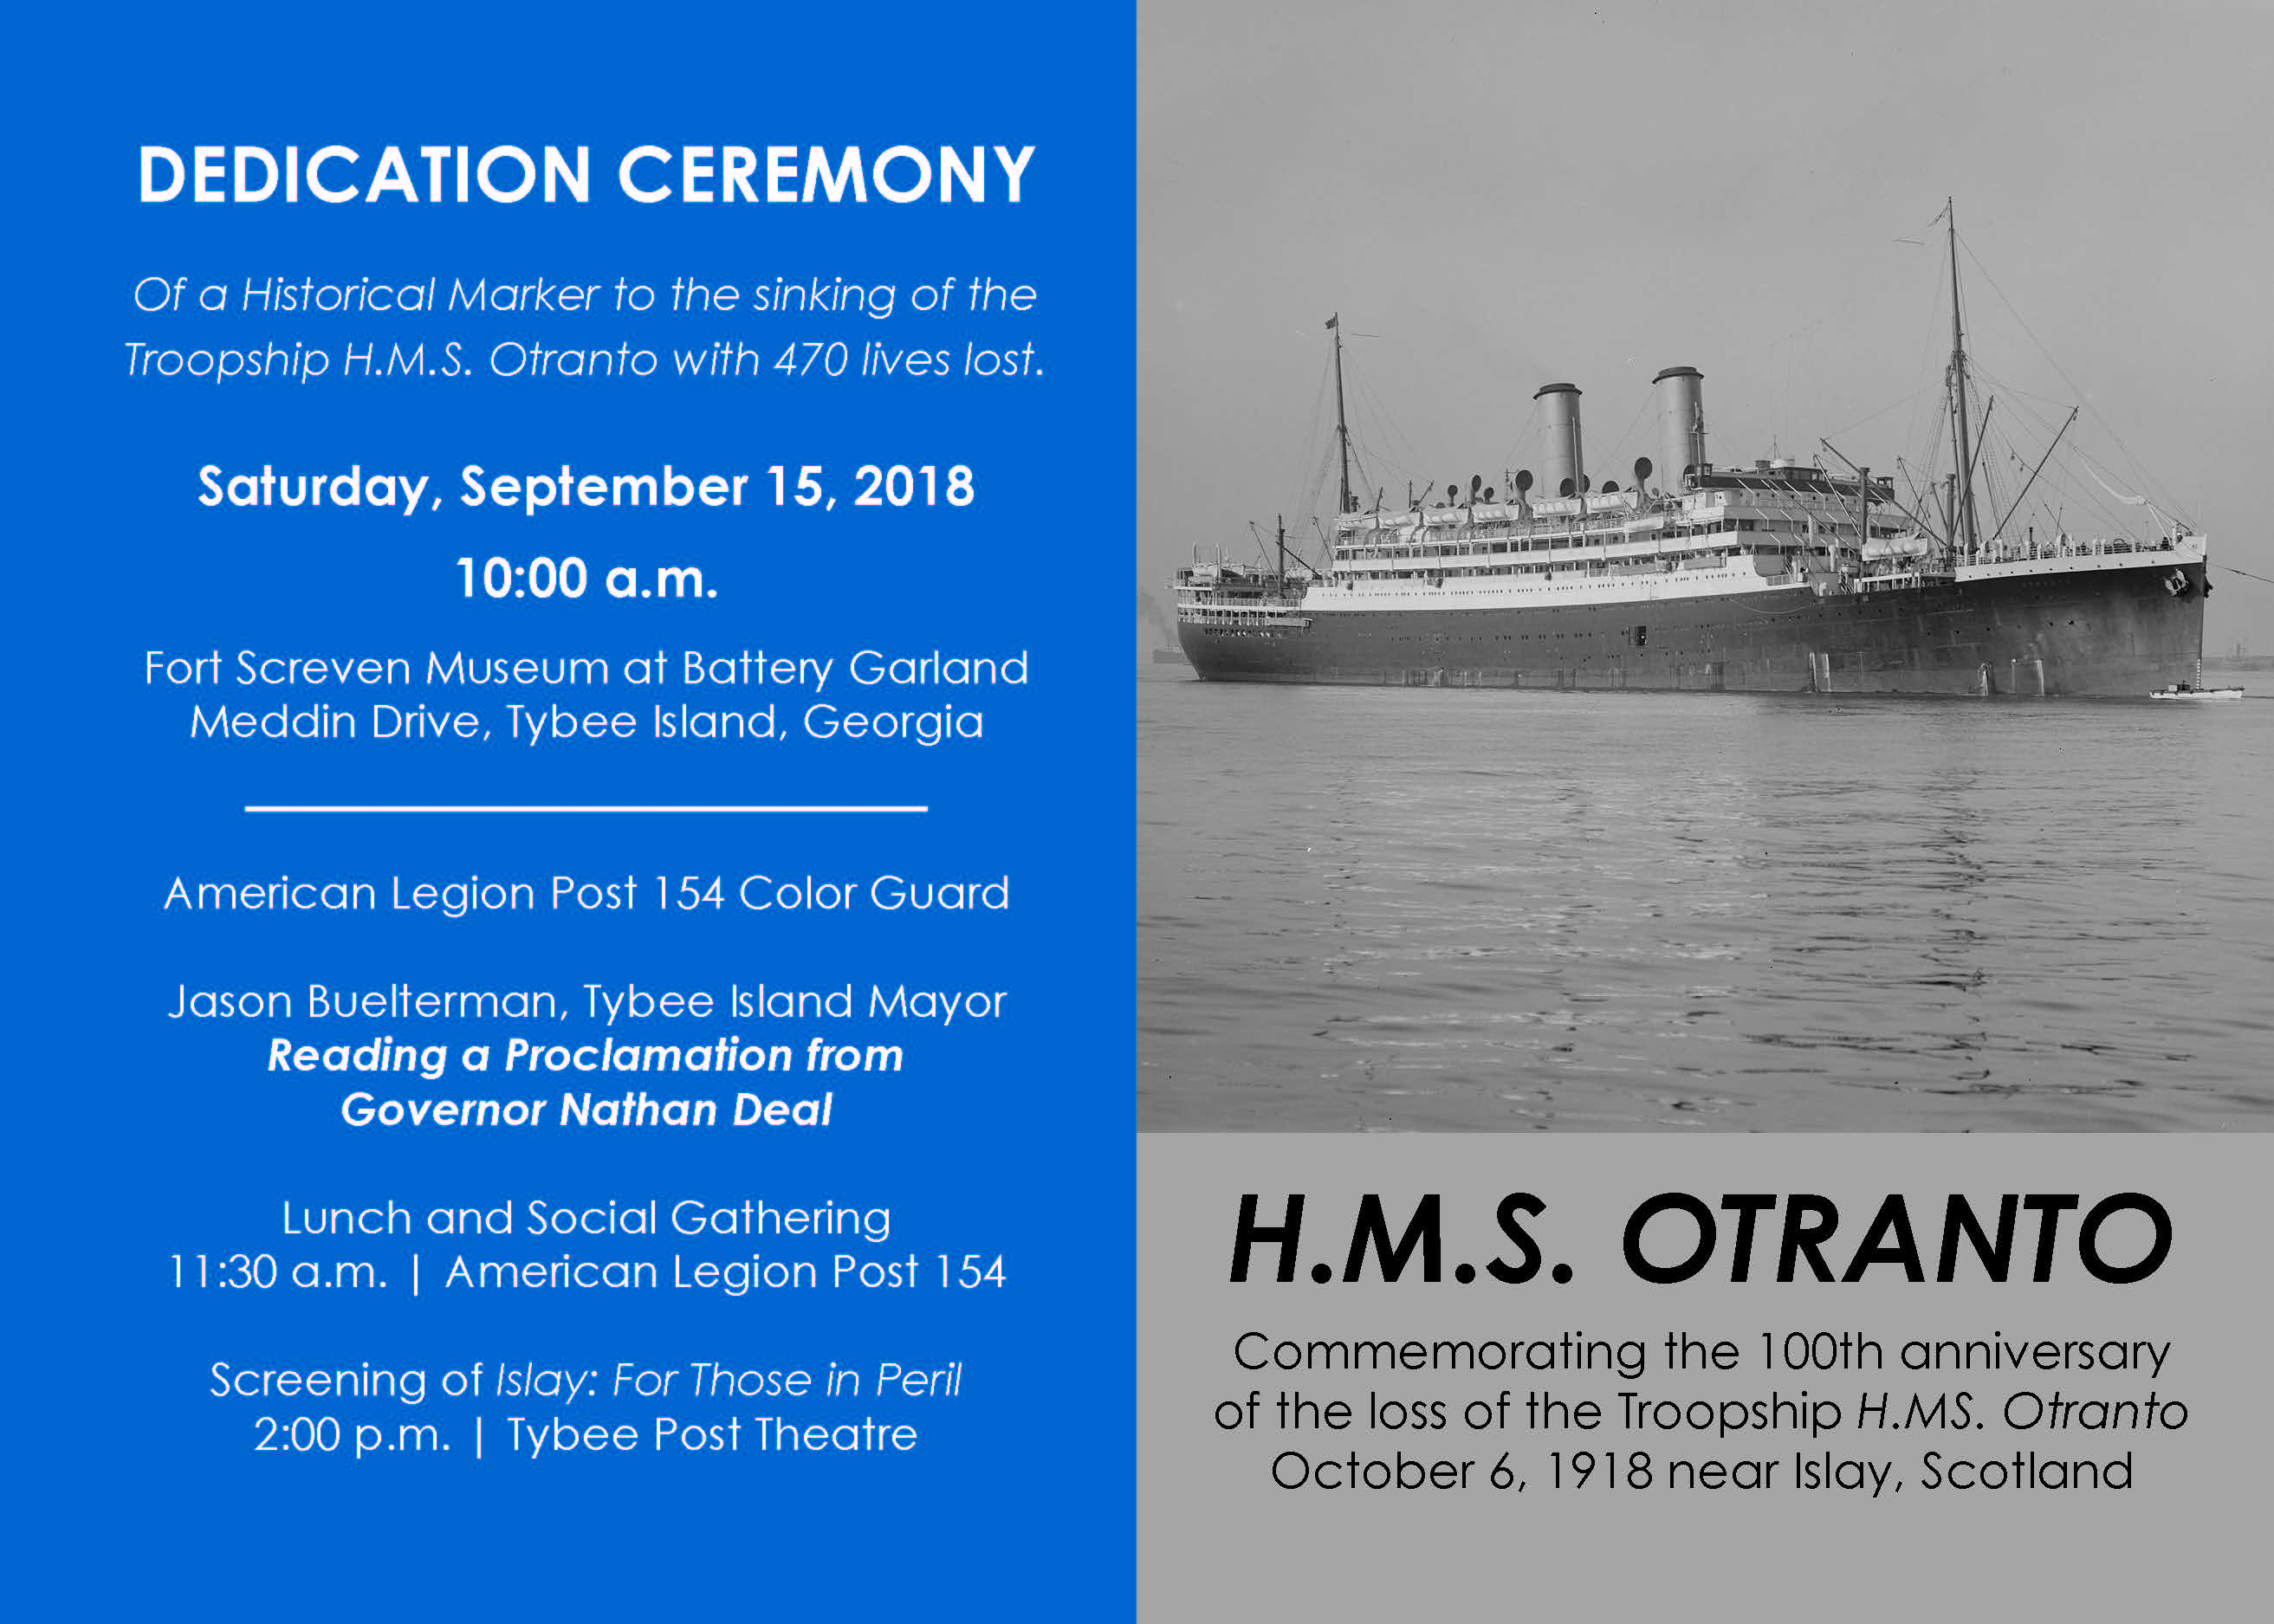 DEDICATION CEREMONY Of a Historical Marker to the sinking of the Troopship H.M.S. Otranto with 470 lives lost. Saturday, September 15, 2018 10:00 a.m. Fort Screven Museum at Battery Garland Meddin Drive, Tybee Island, Georgia American Legion Post 154 Color Guard Jason Buelterman, Tybee Island Mayor Reading a Proclamation from Governor Nathan Deal Lunch and Social Gathering 11:30 a.m. | American Legion Post 154 Screening of Islay: For Those in Peril 2:00 p.m. | Tybee Post Theatre